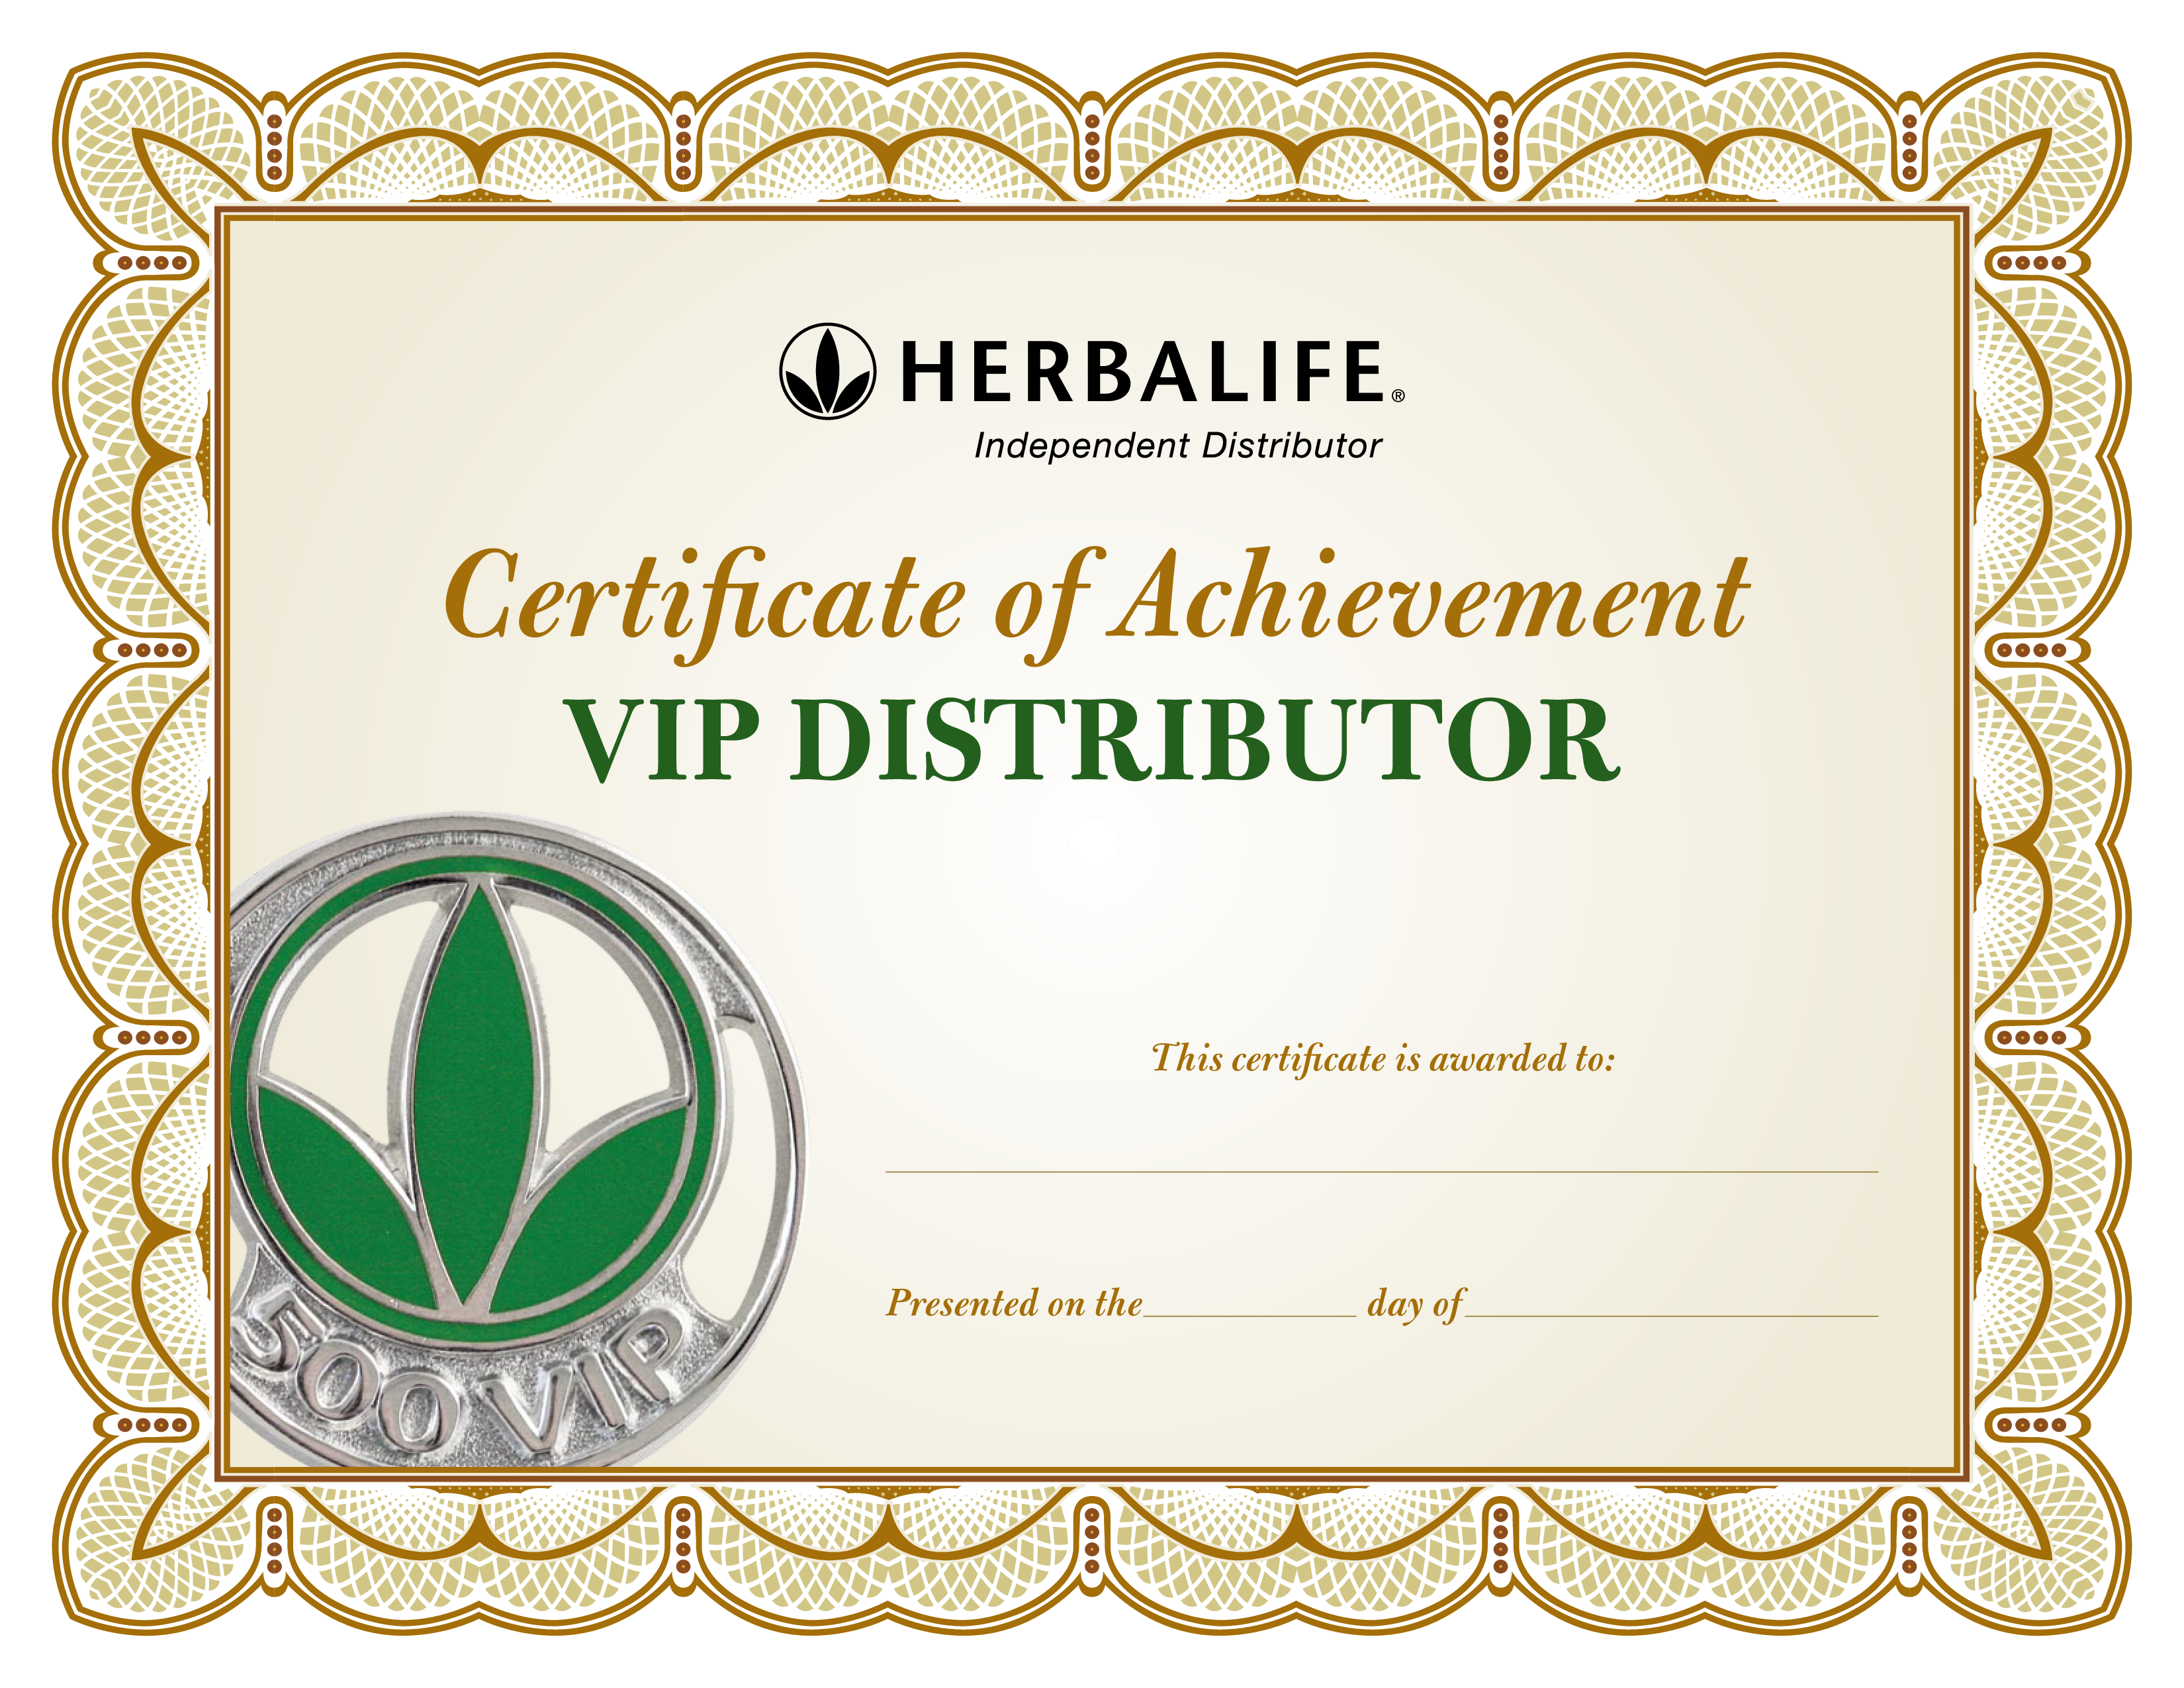 Distributor Certificate Of Achievement main image